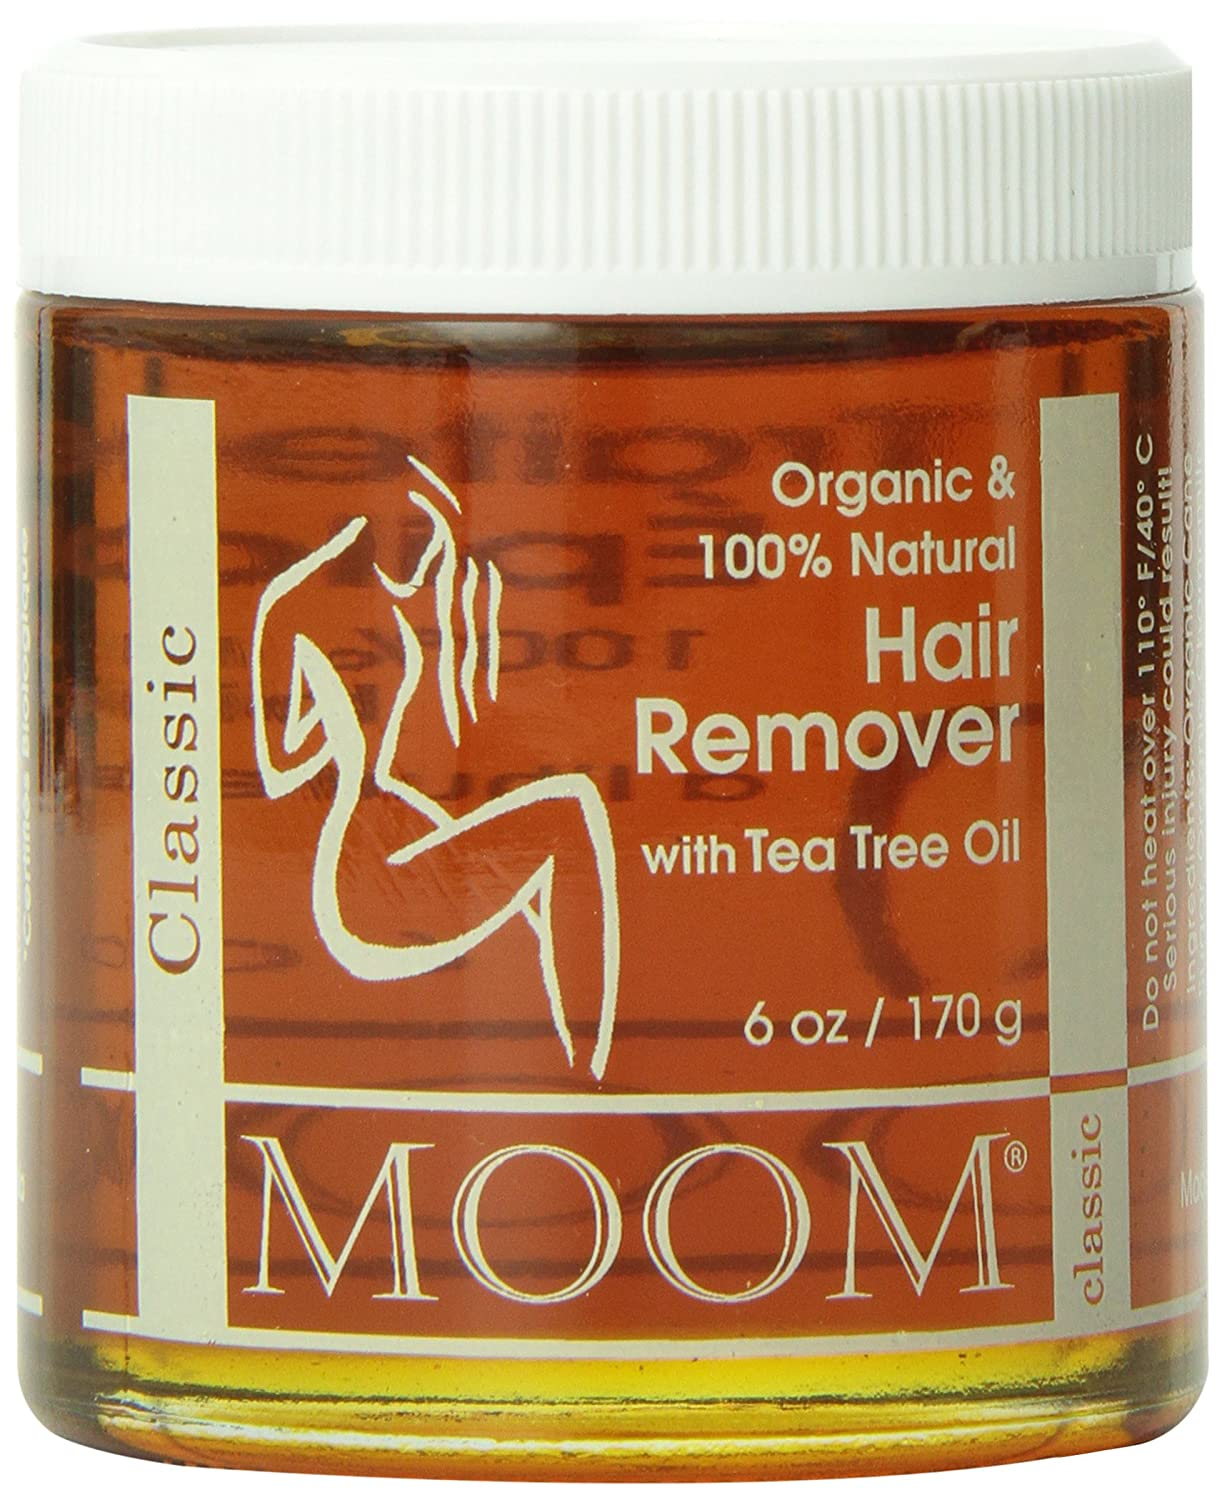 Moom Organic Hair Remover Refill, 6-Ounce Jars (Pack of 2)